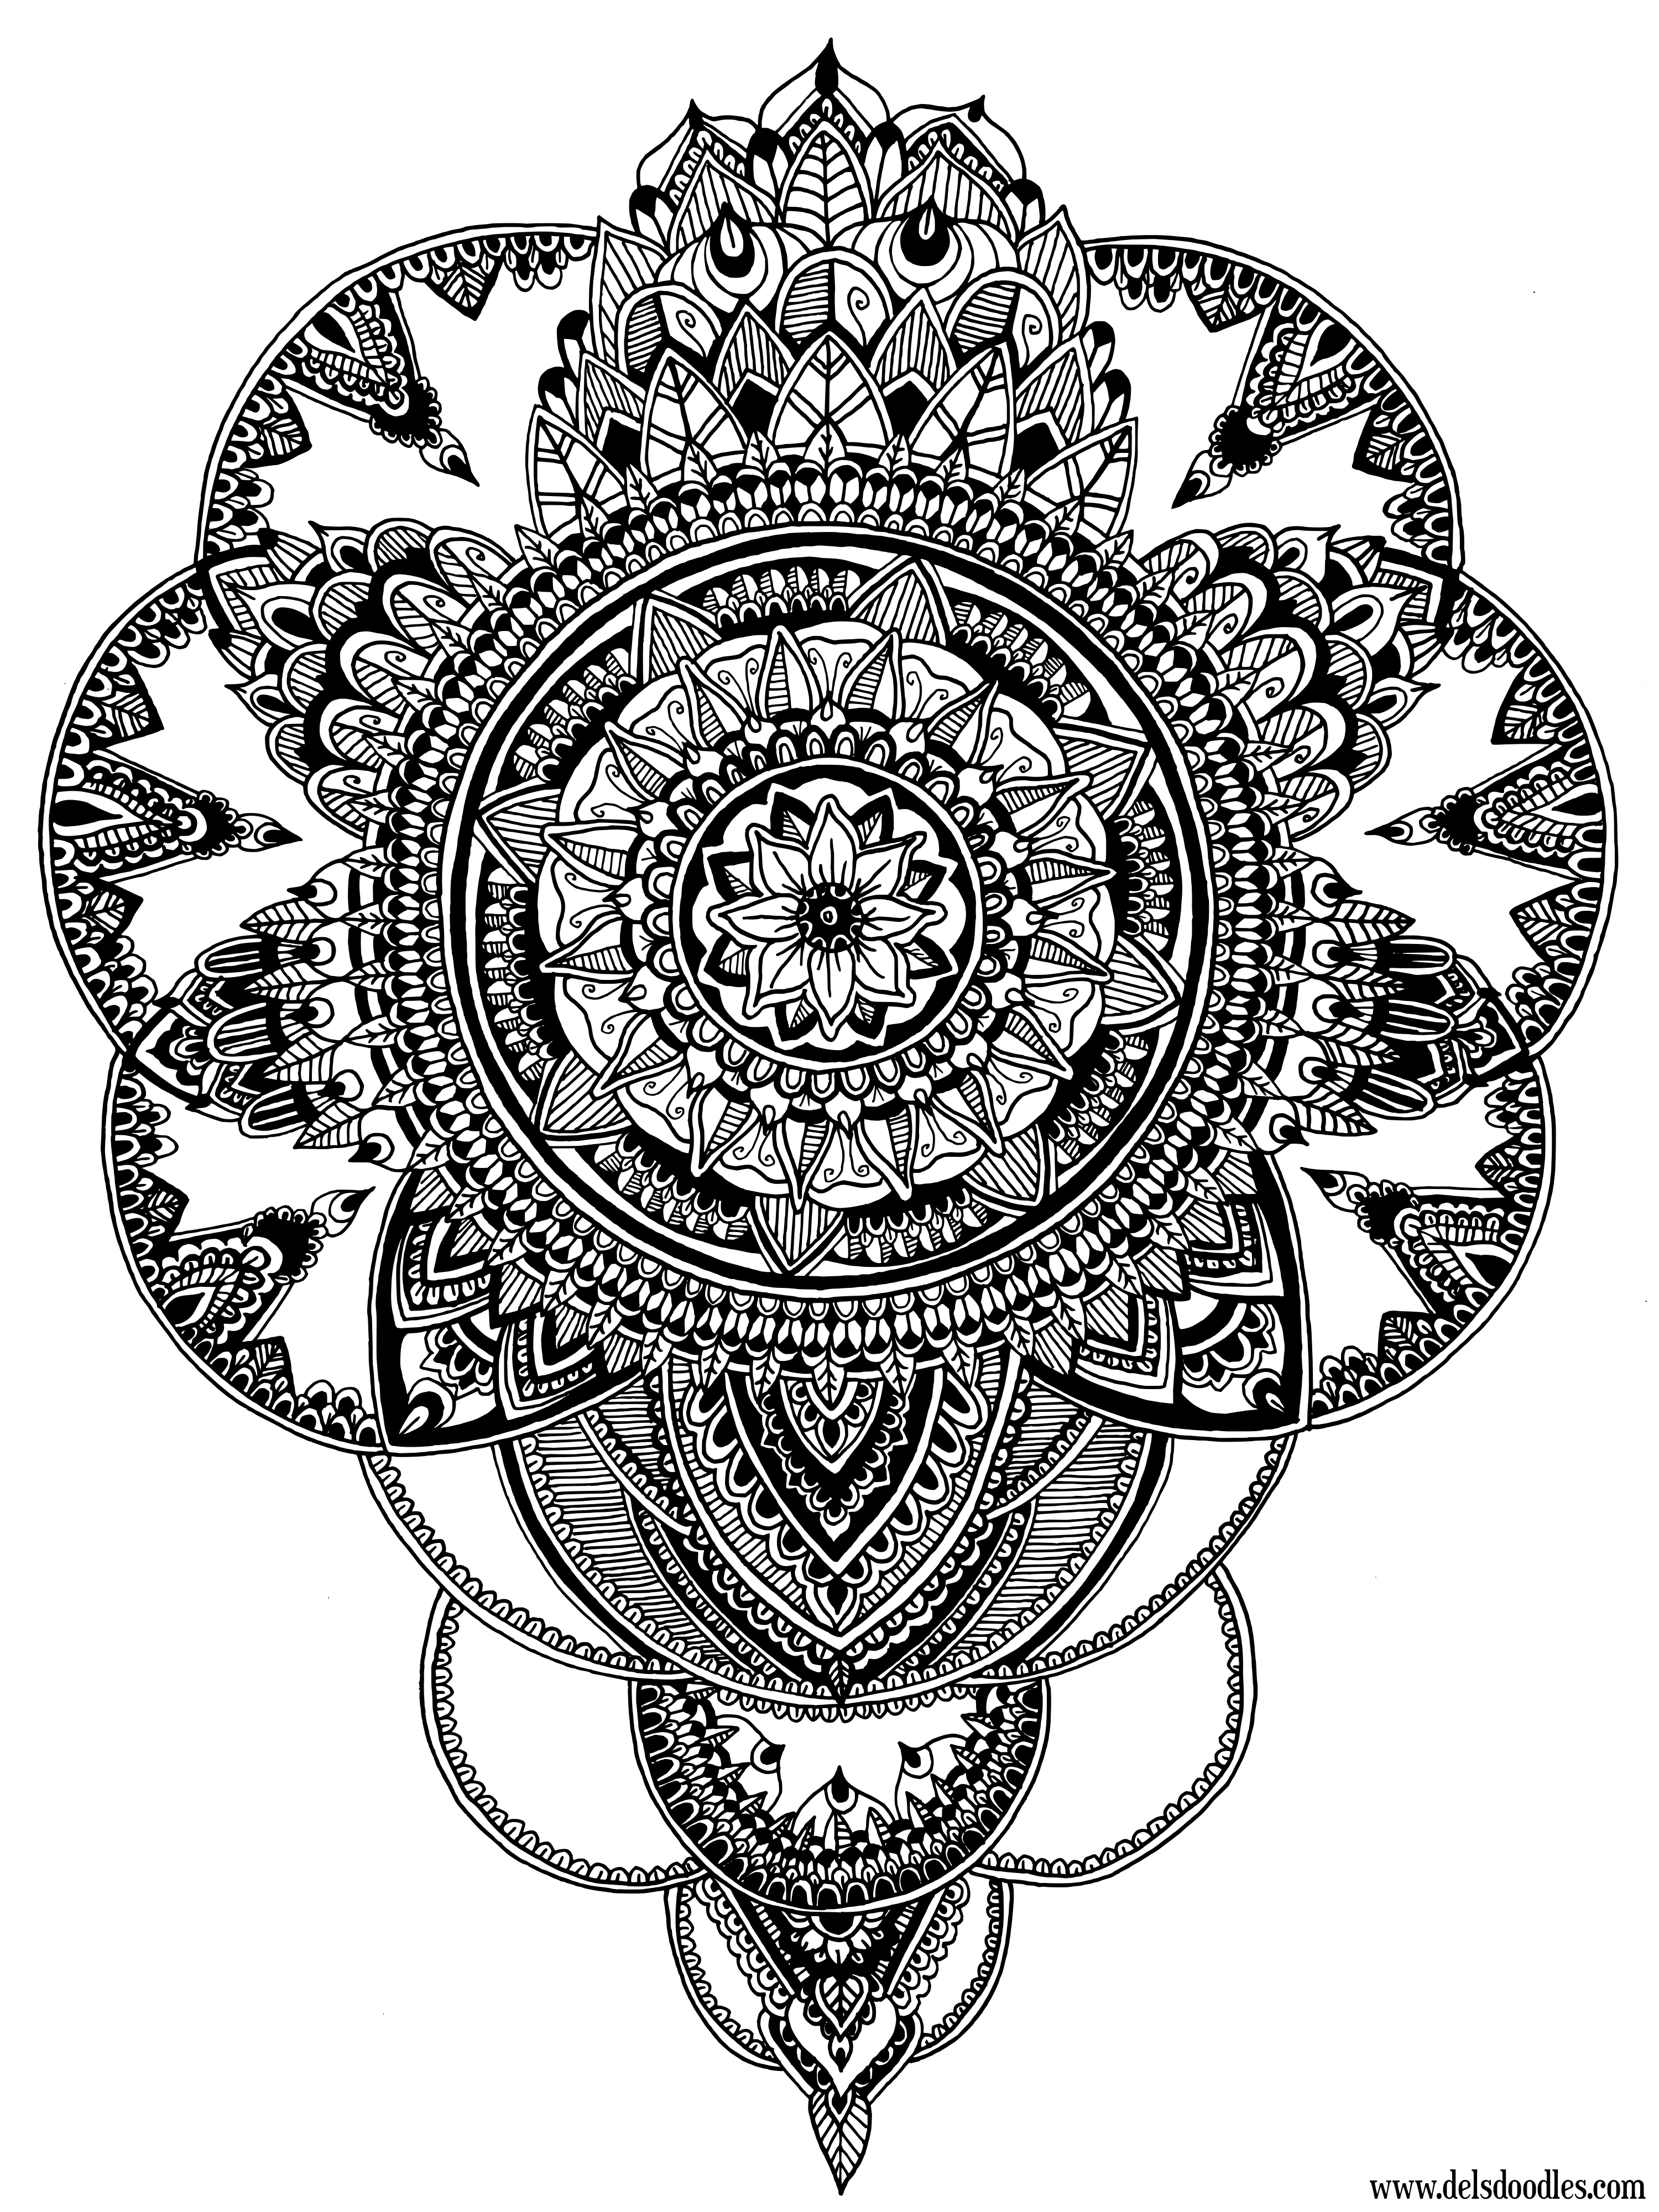 Two Detailed Colouring Pages